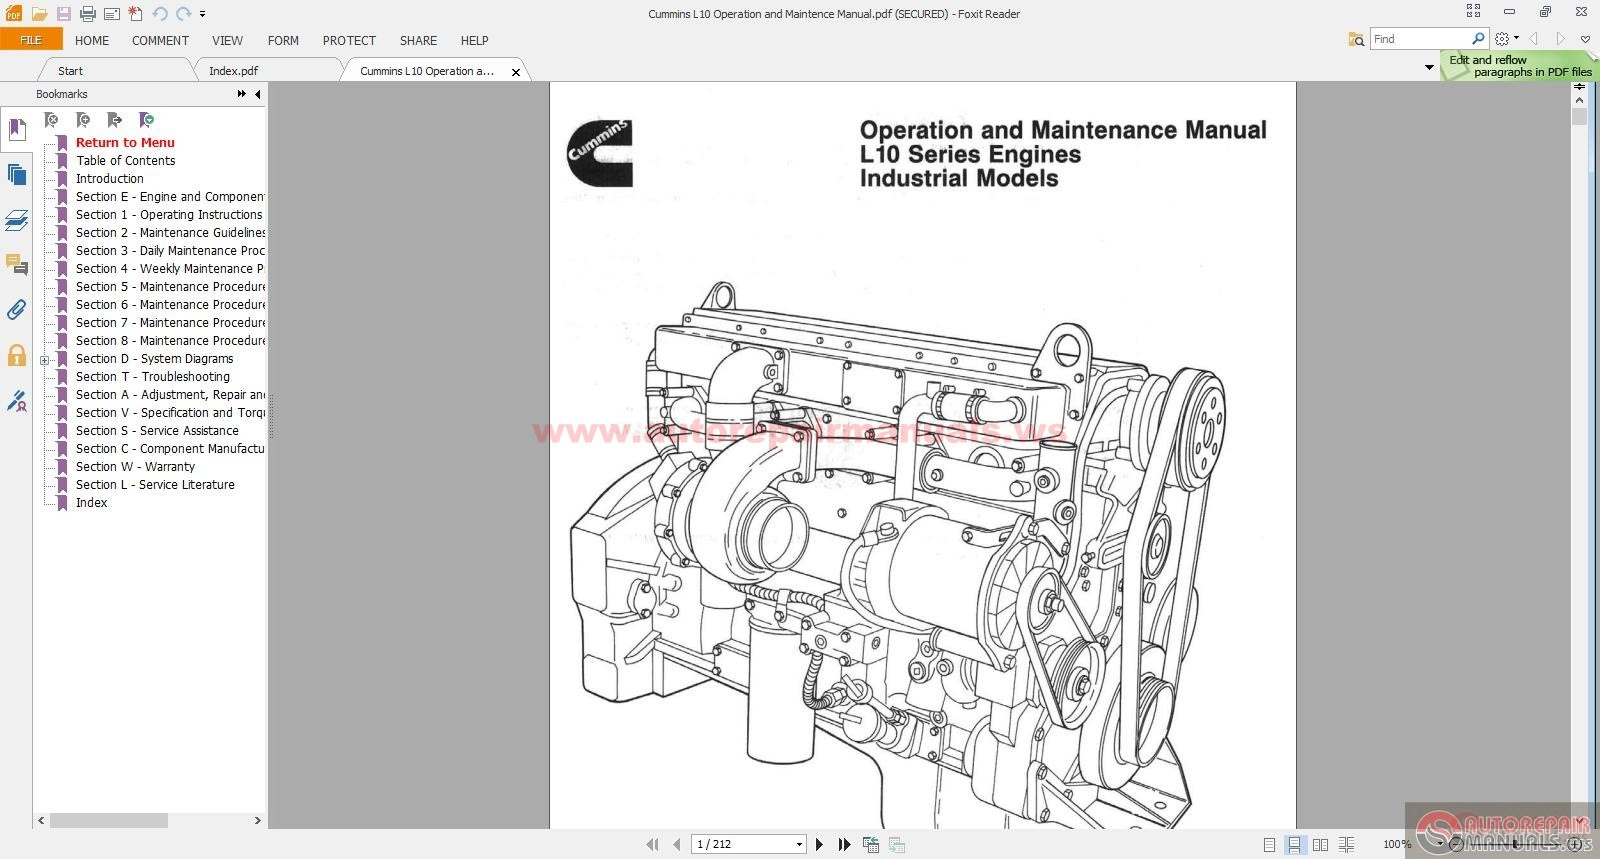 jacobs brake wiring diagram images jacobs engine ke wiring cummins l10 manual collection auto repair manual forum heavy